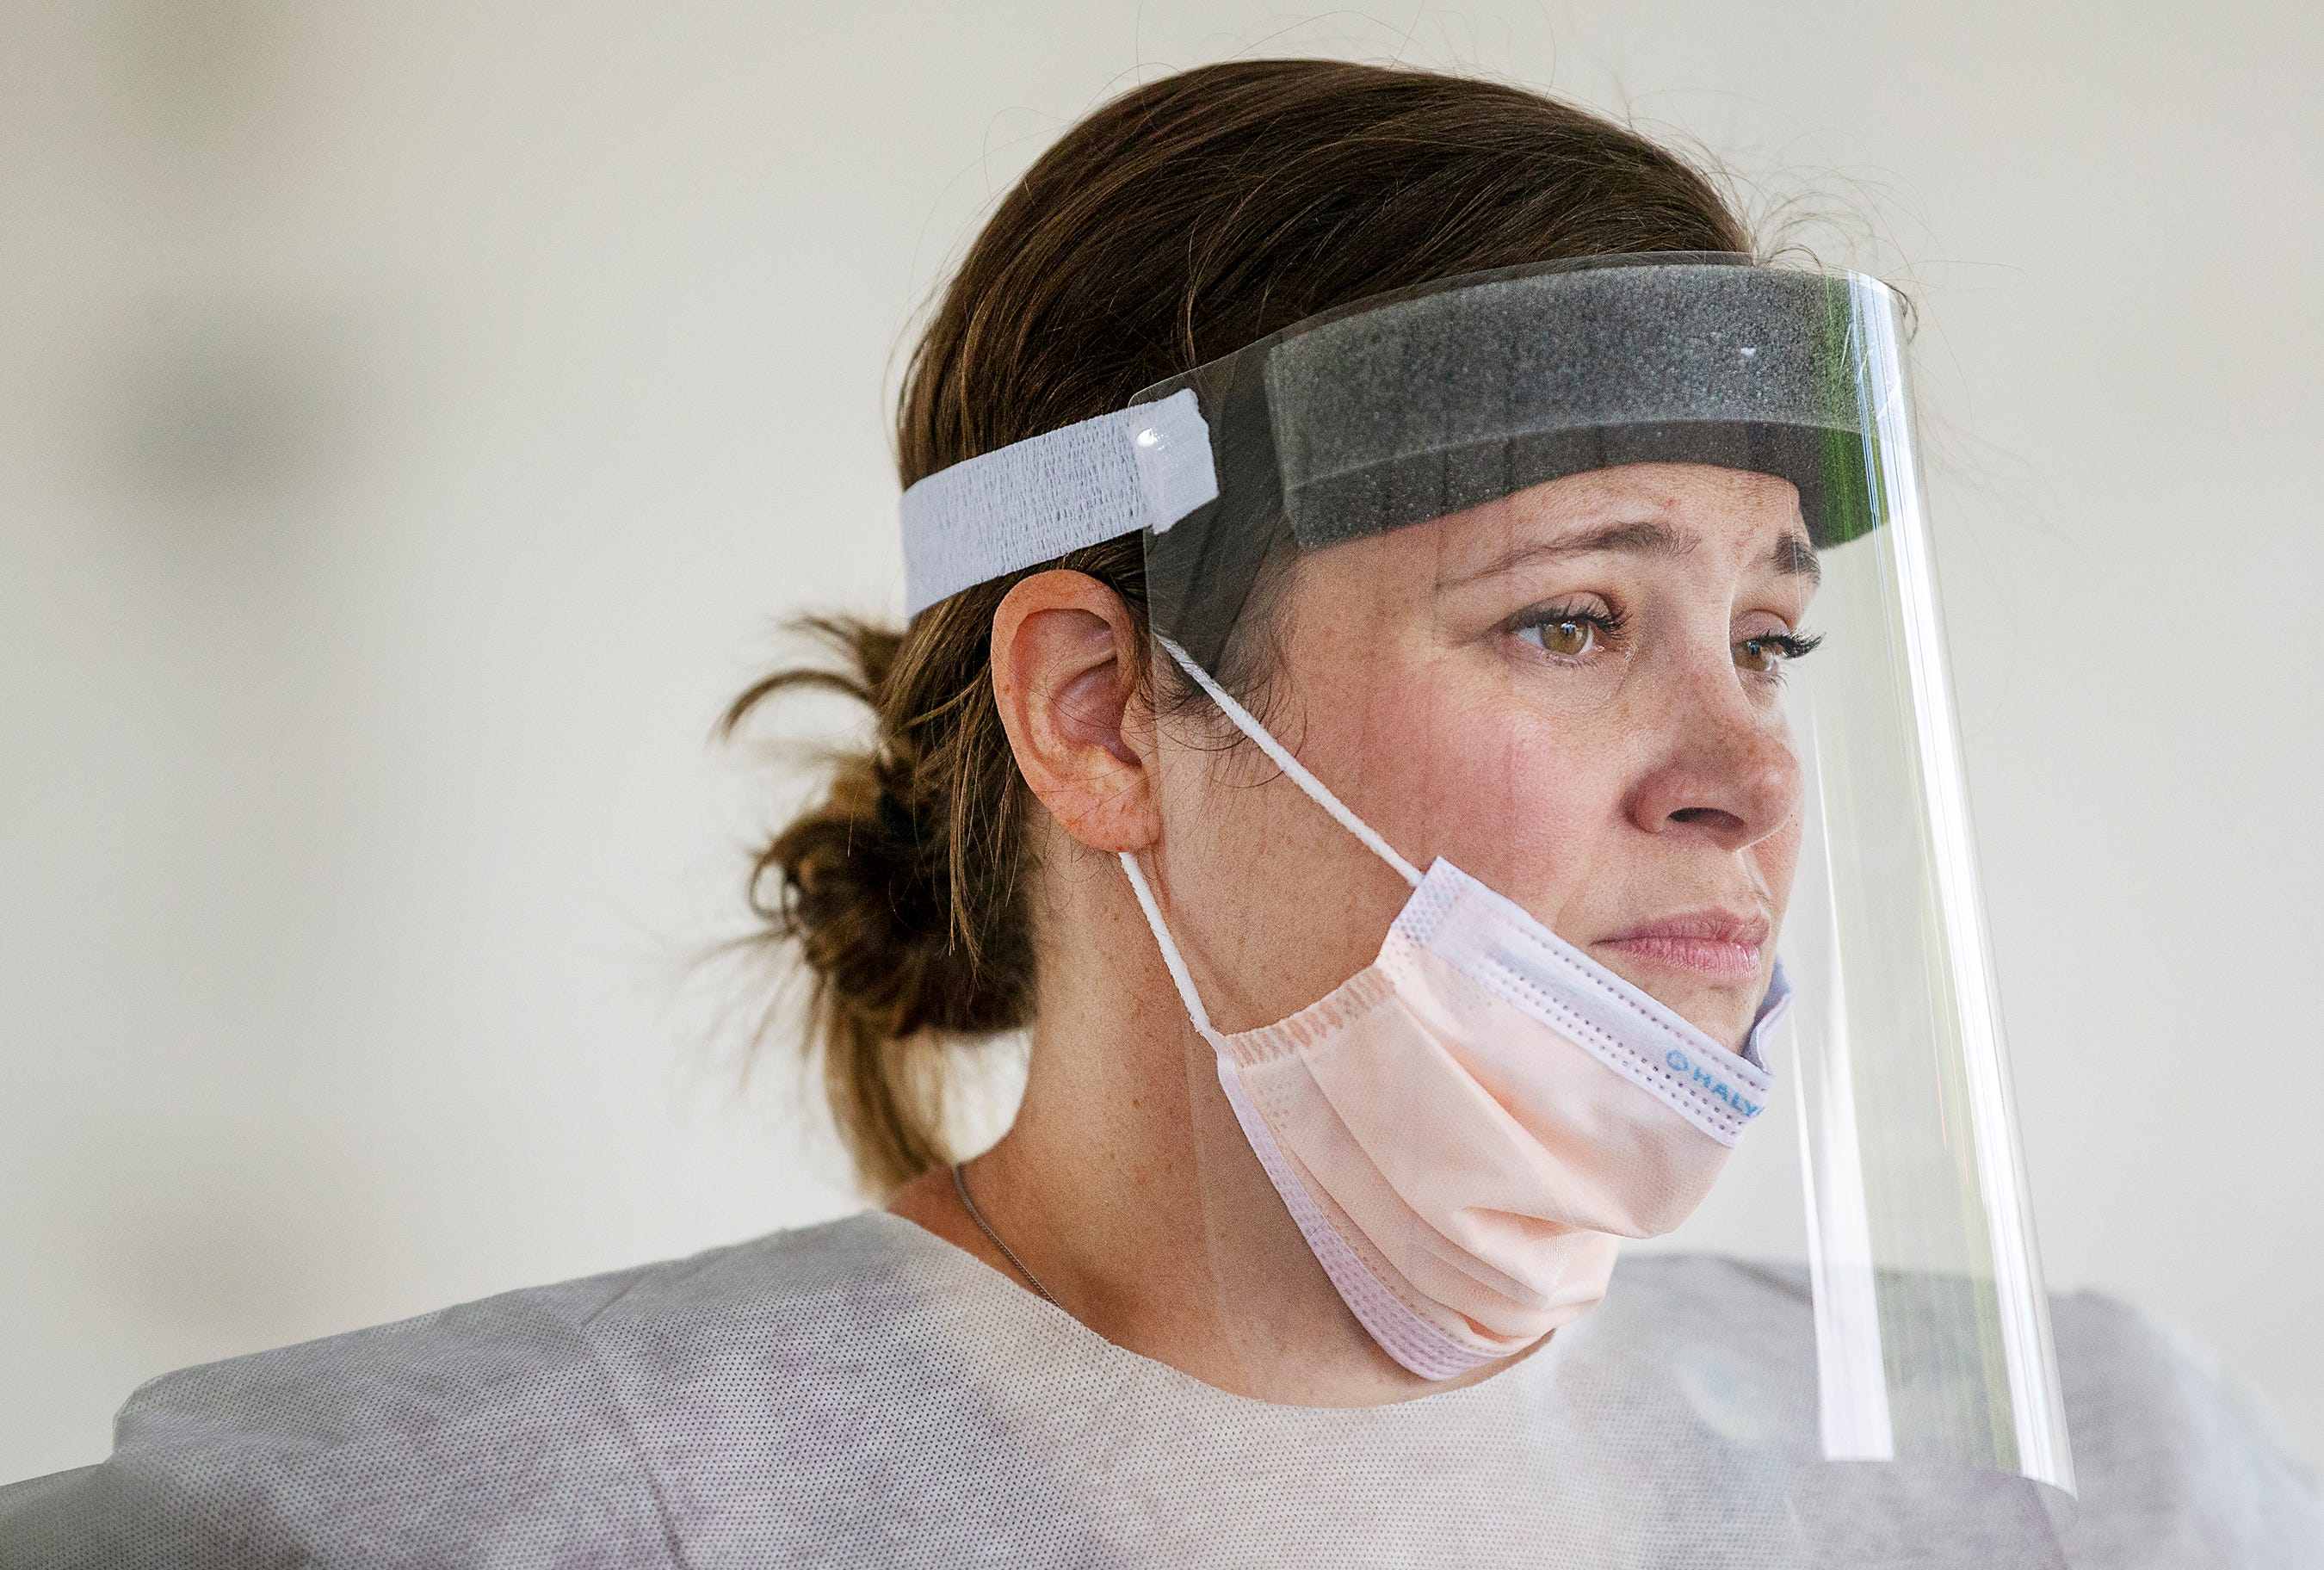 """After comforting a woman she swabbed for COVID-19 testing, registered nurse Jenna Puckett takes a momentary rest before resuming testing at a mobile site in Cape Coral, Fla. """"She was afraid and overwhelmed,"""" Puckett said of the woman she tested. """"She just needed someone to listen."""""""